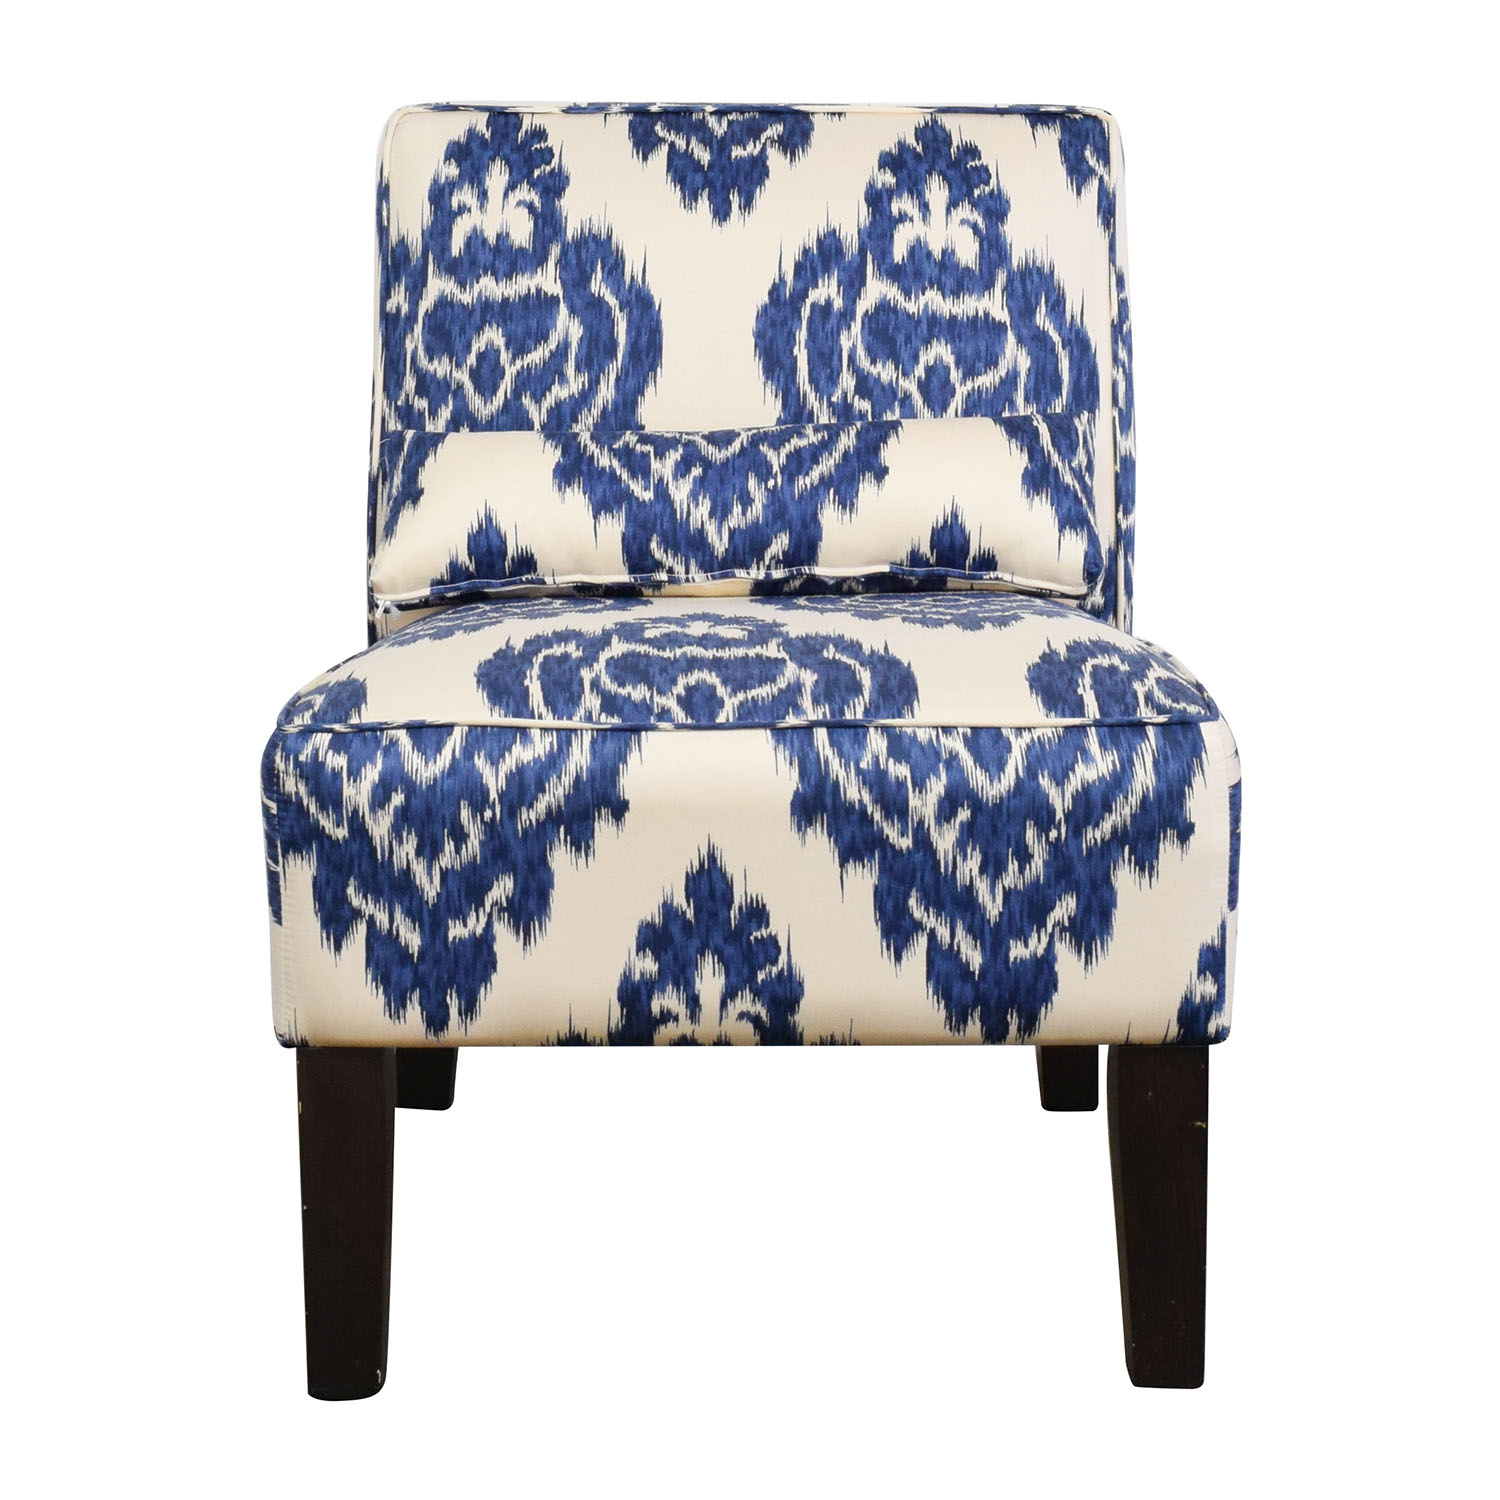 Astonishing 52 Off Overstock Overstock Blue And White Accent Chair Chairs Machost Co Dining Chair Design Ideas Machostcouk